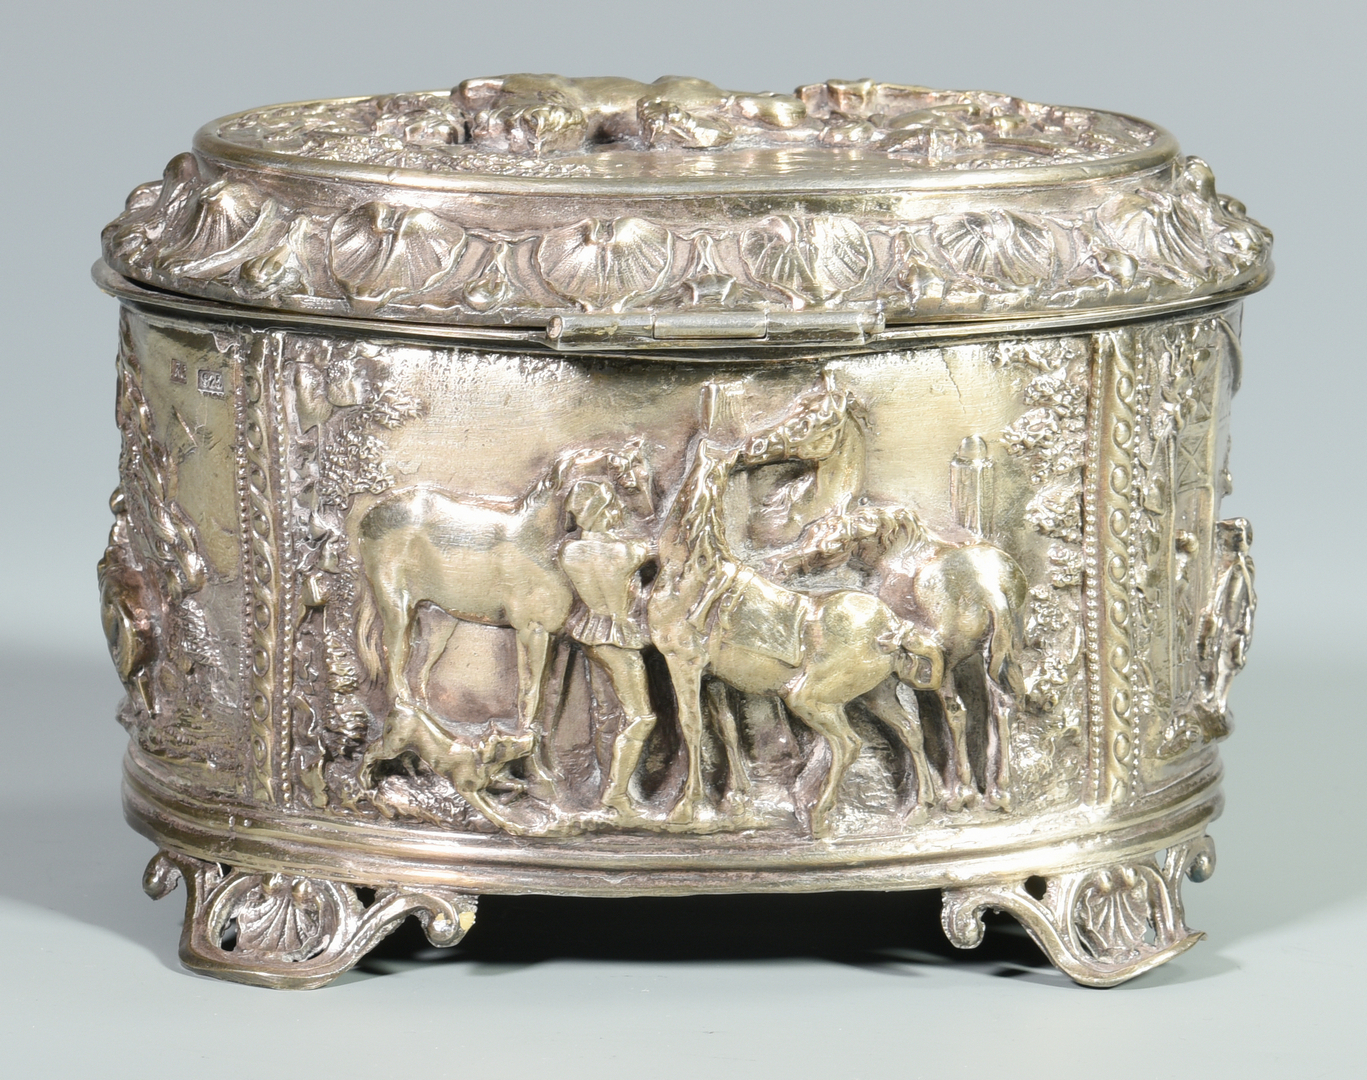 Lot 461 5 Sterling Horse Related Items Inc Jewel Box